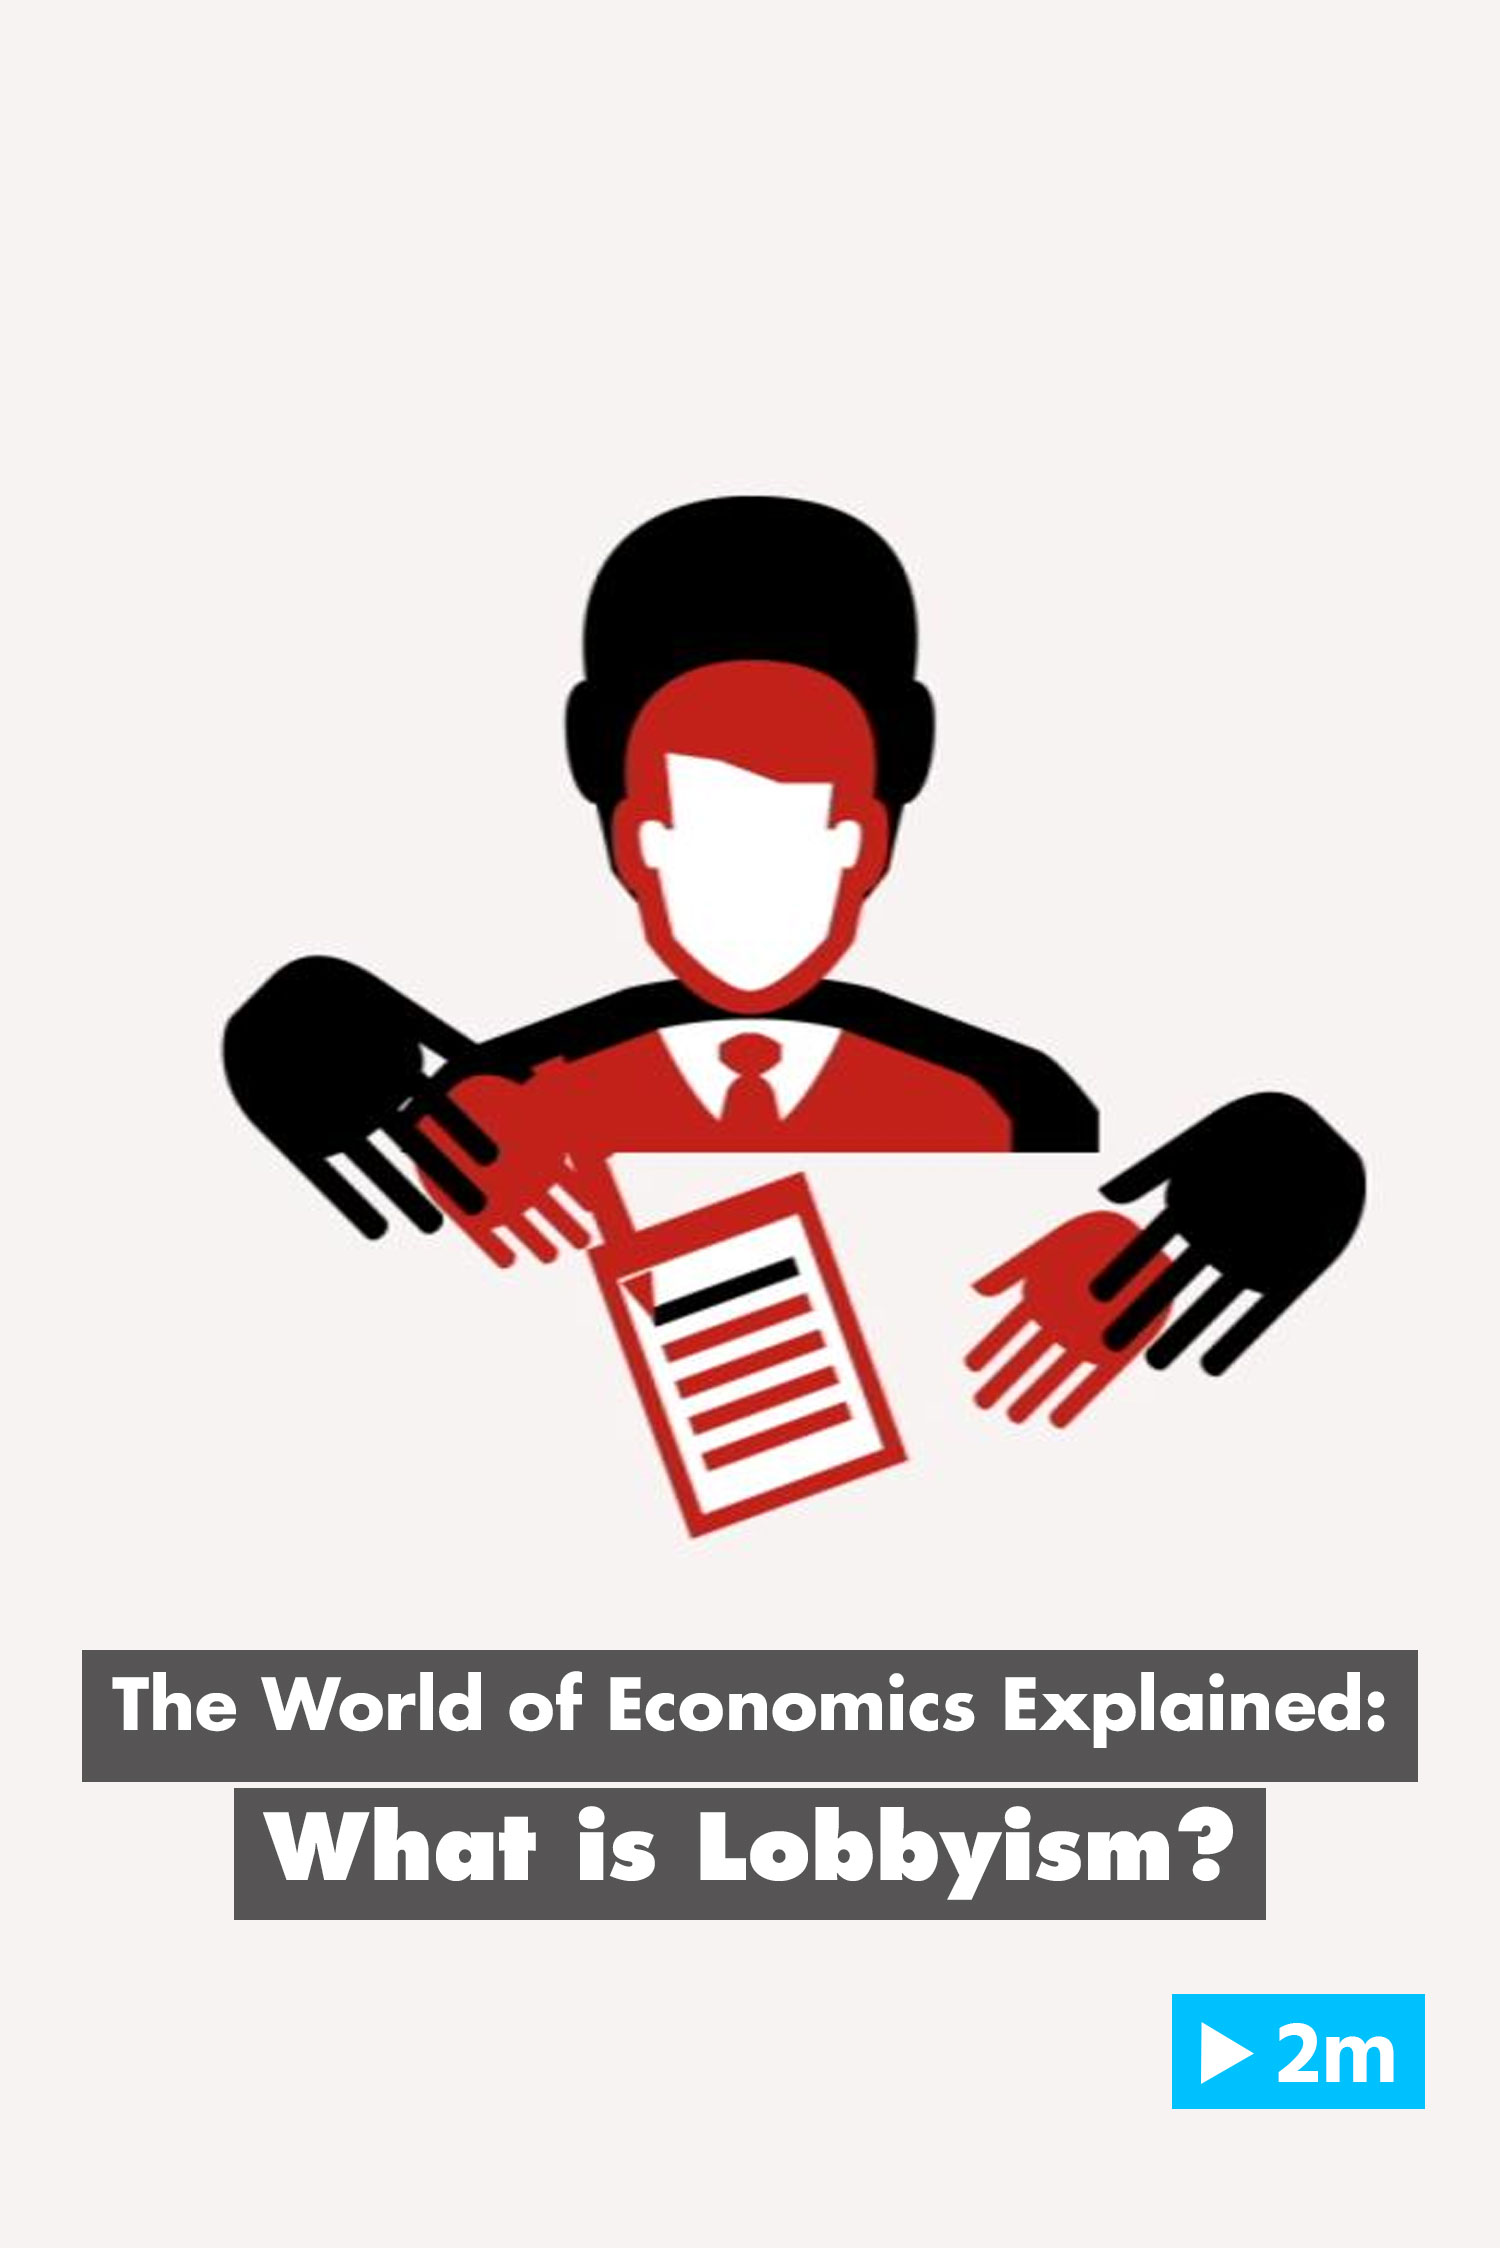 The World of Economics Explained: What is Lobbyism?